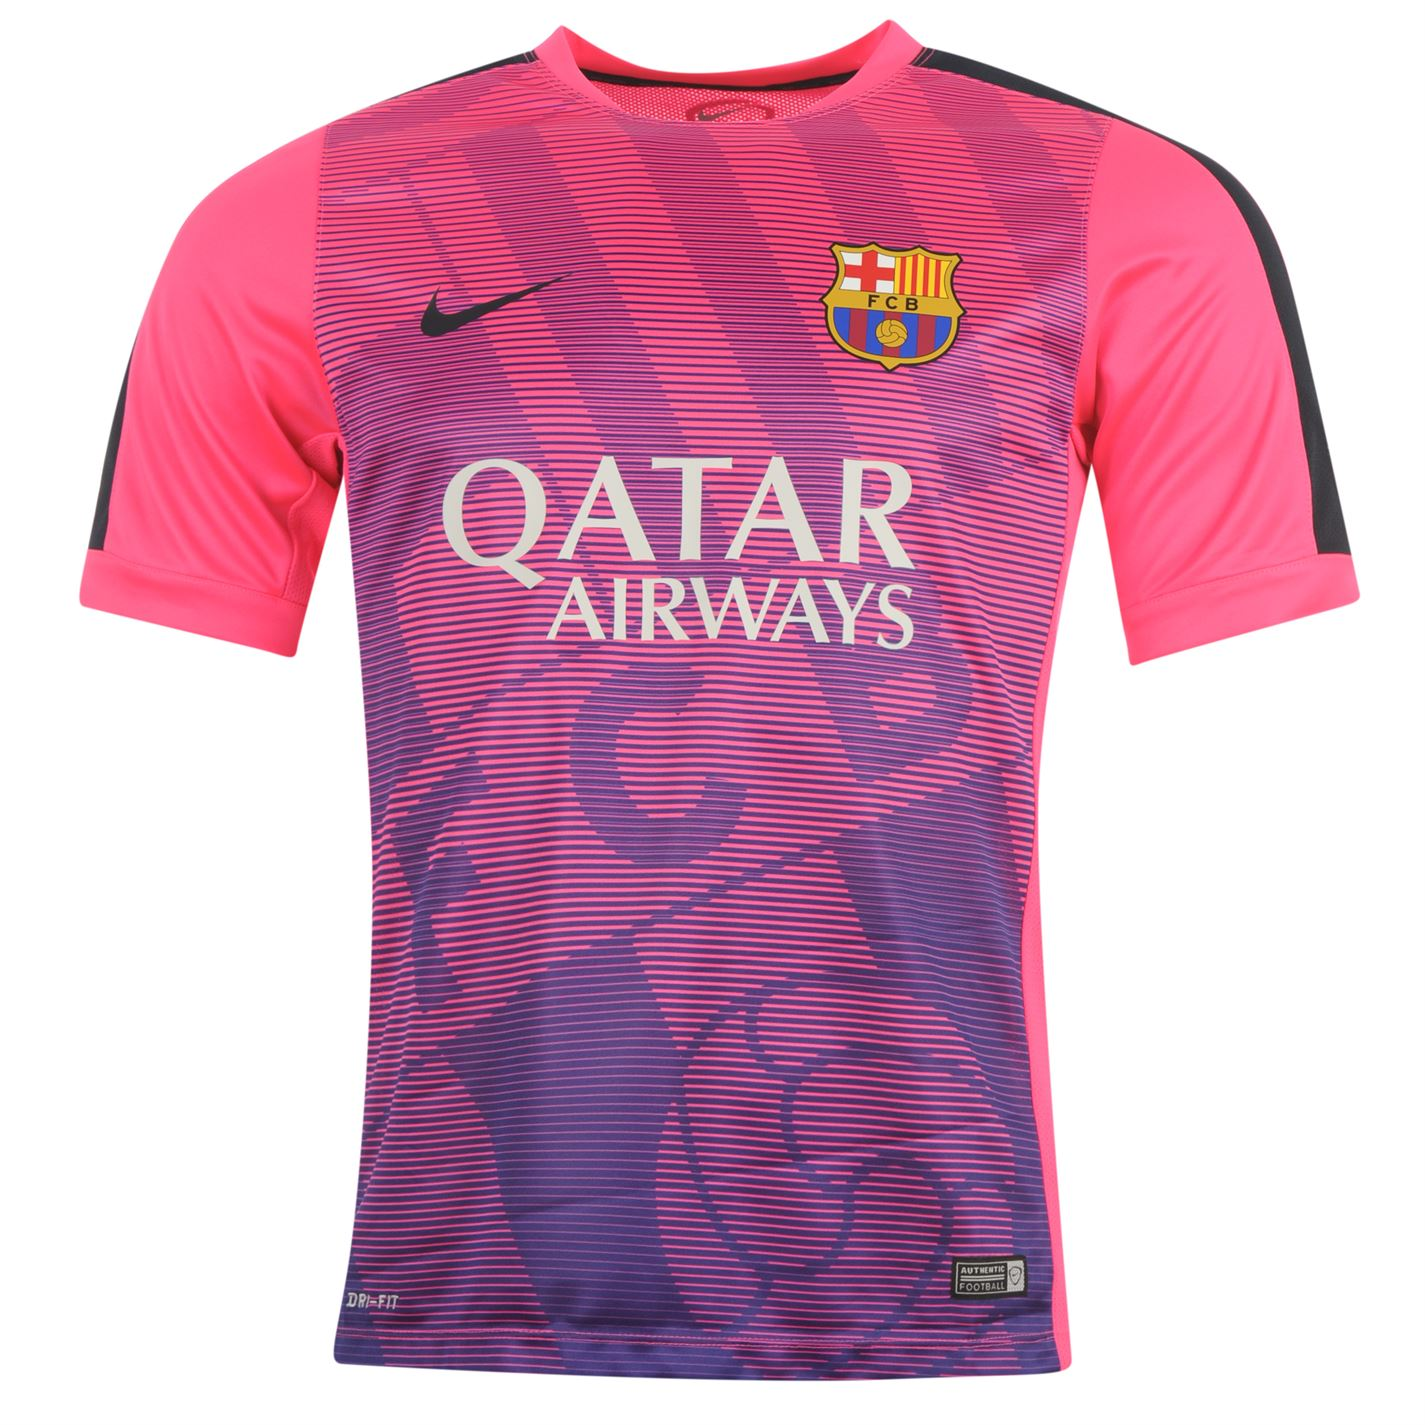 reputable site 17383 eb079 2015 Barcelona Pre-Match Pink Training Soccer Jersey Shirt